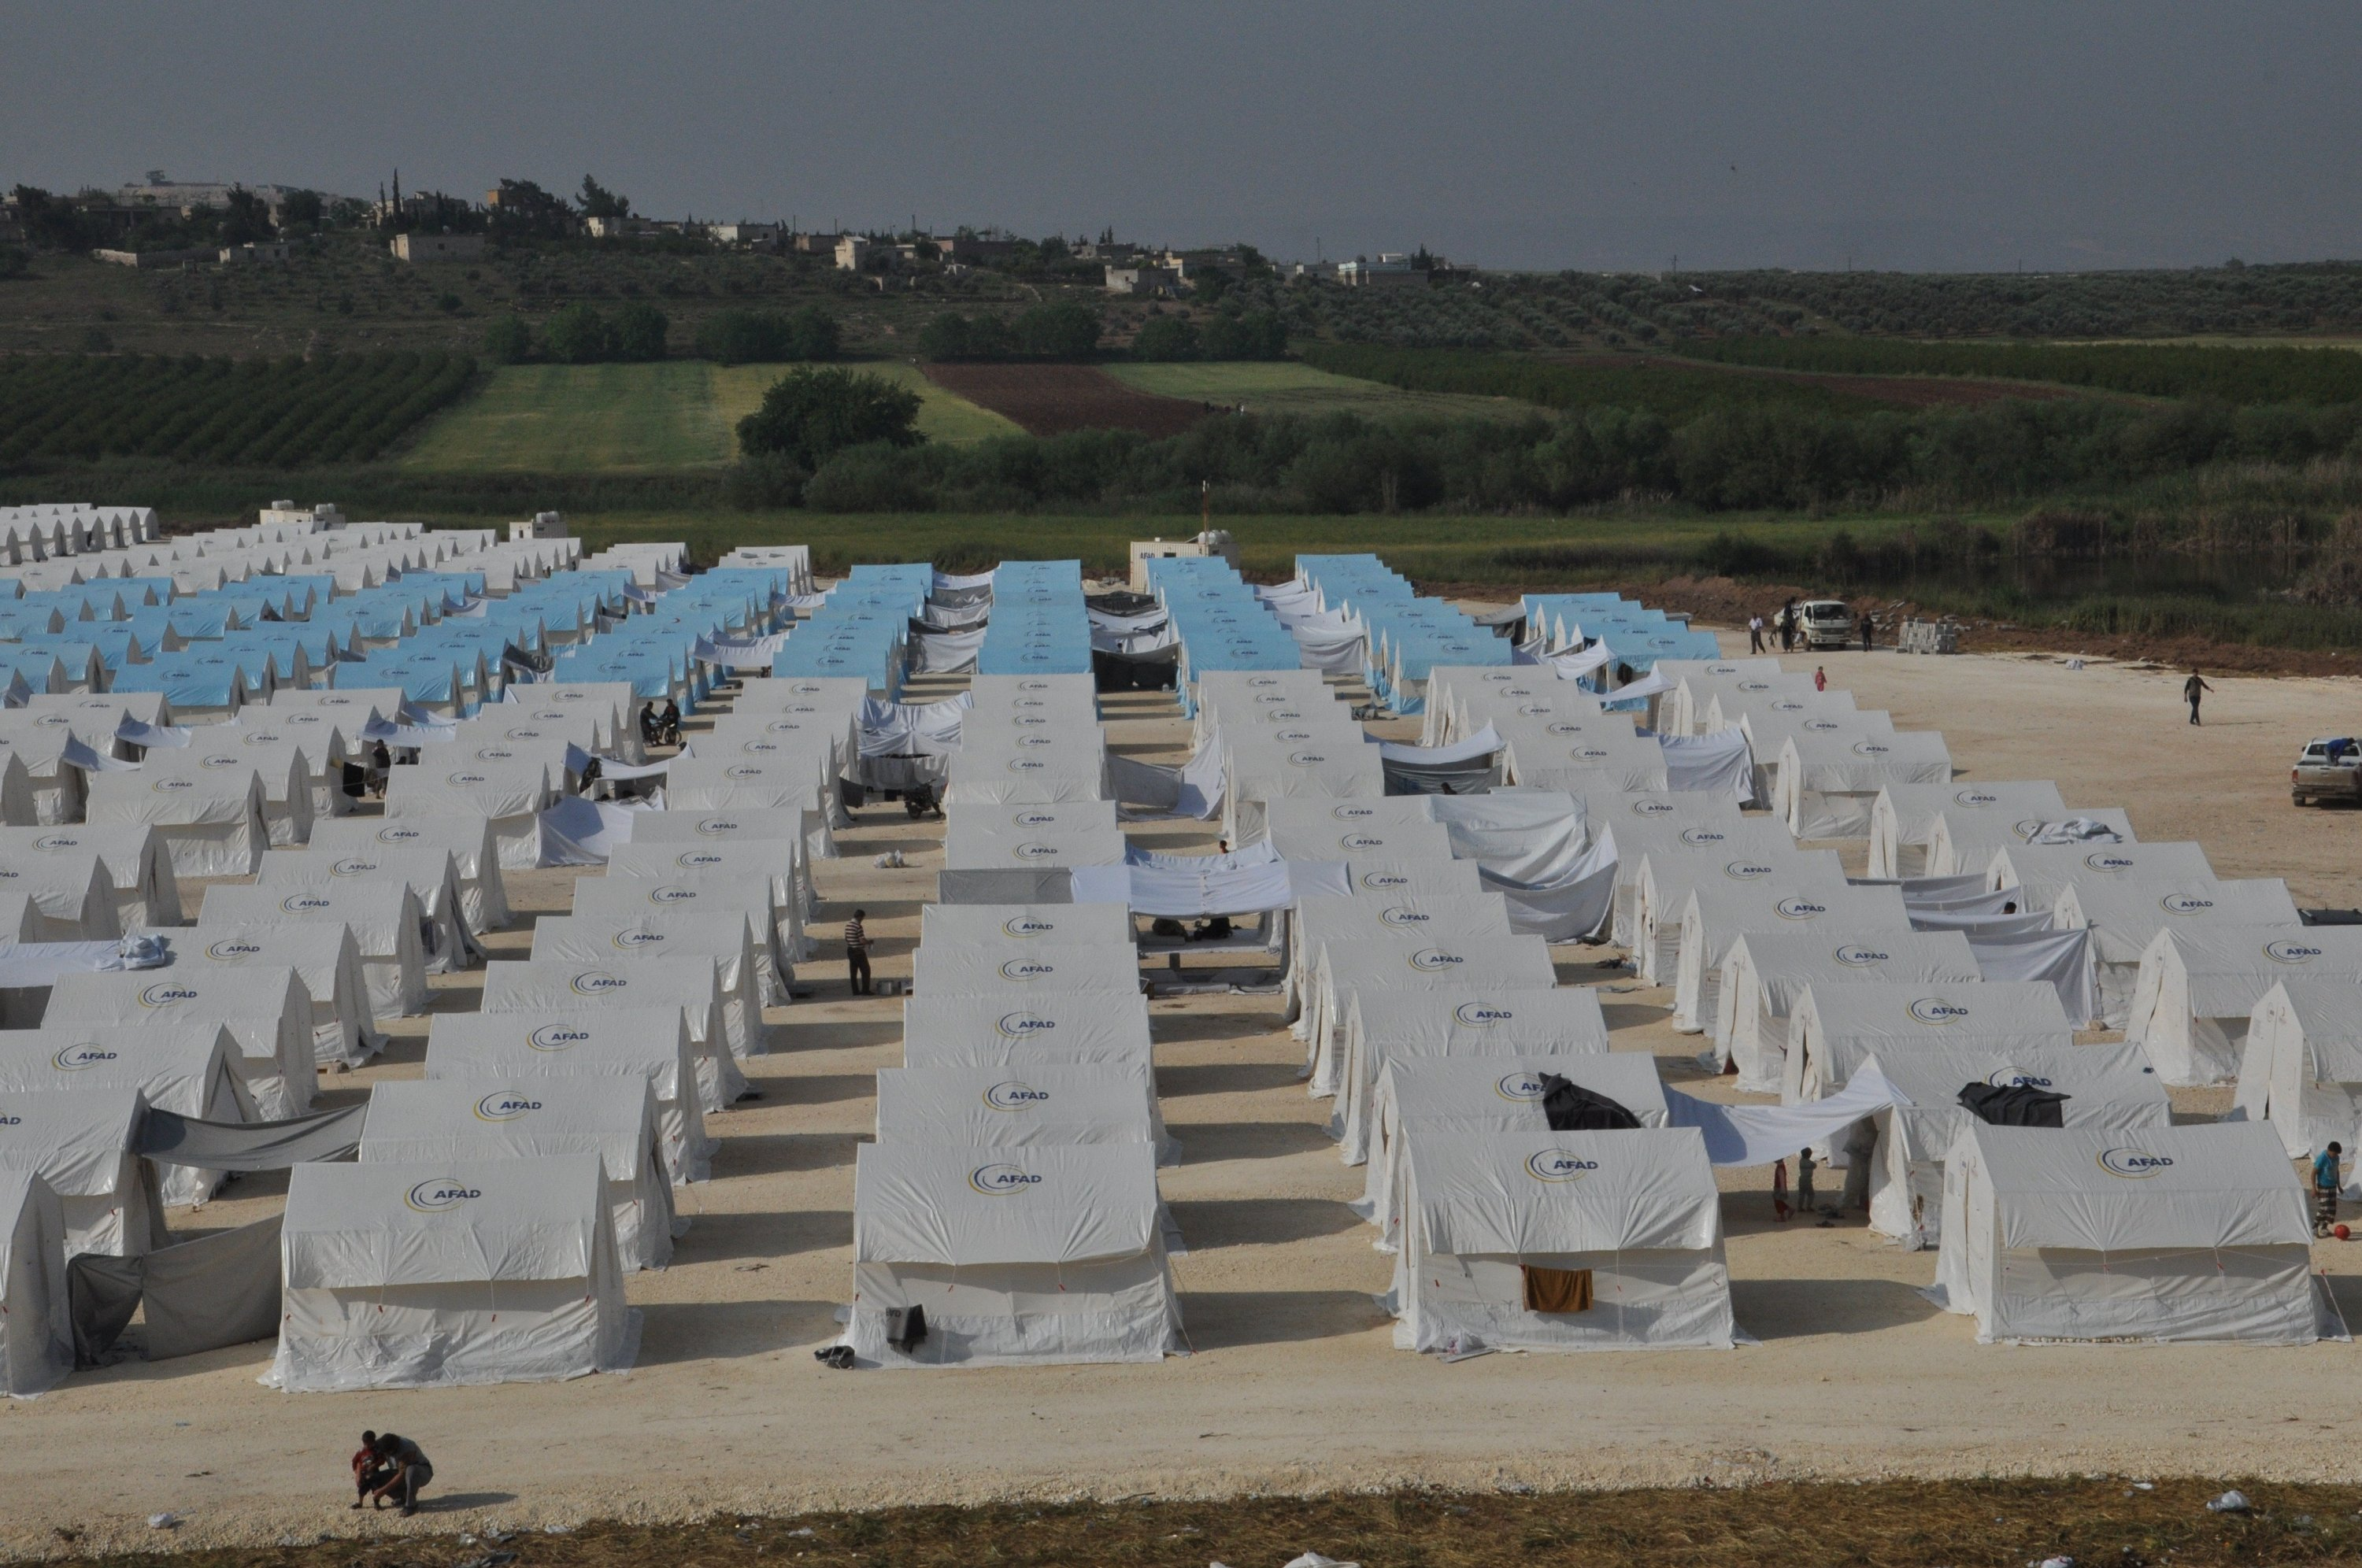 Turkey's AFAD spent $55M in humanitarian assistance in 2019, report says